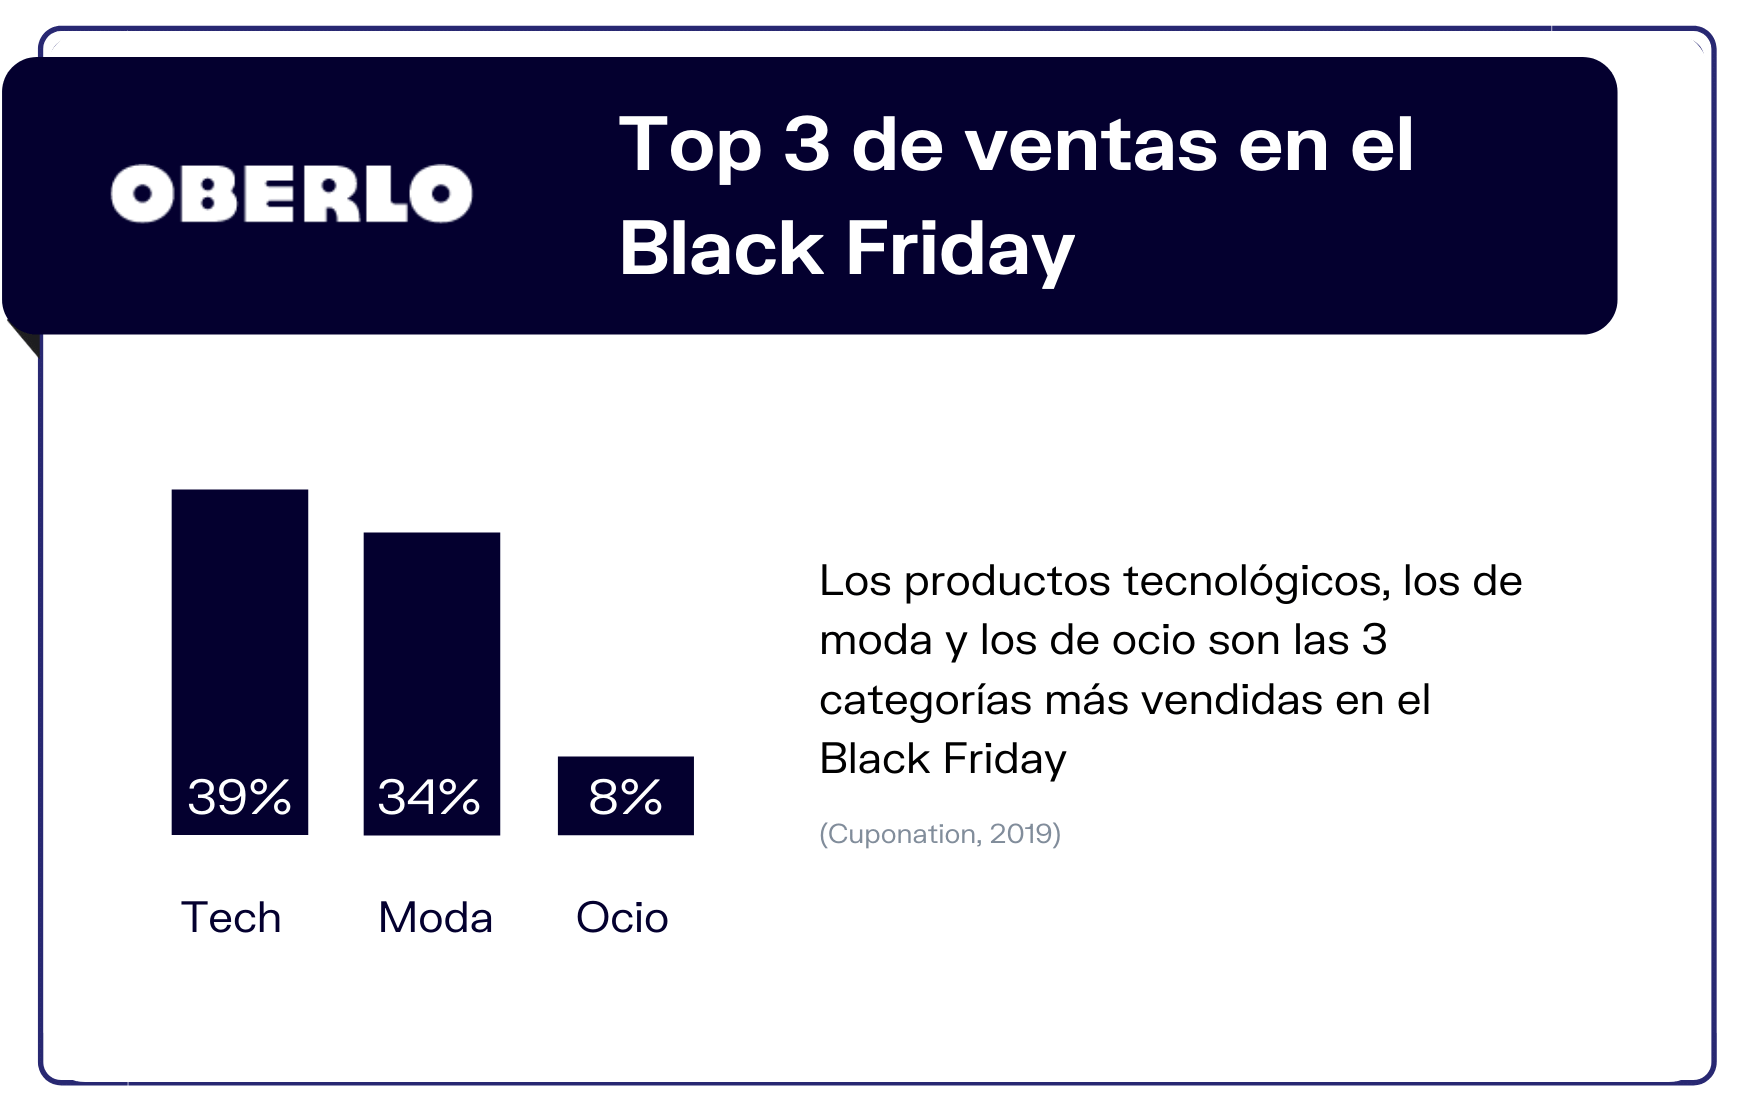 estadisticas black friday 2020 en españa